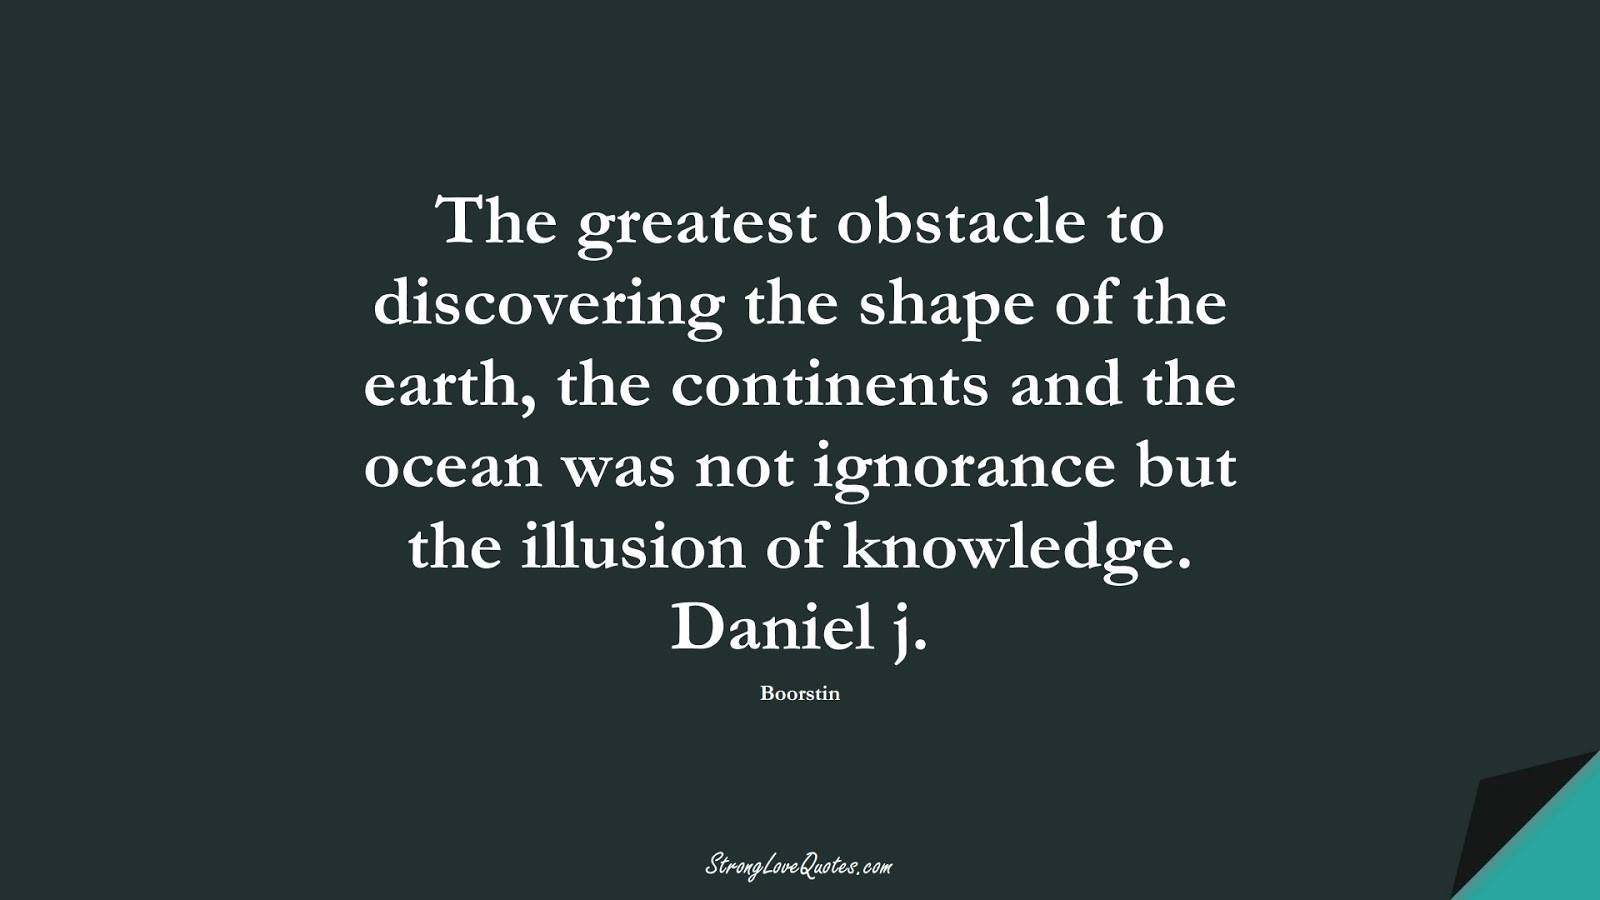 The greatest obstacle to discovering the shape of the earth, the continents and the ocean was not ignorance but the illusion of knowledge. Daniel j. (Boorstin);  #KnowledgeQuotes